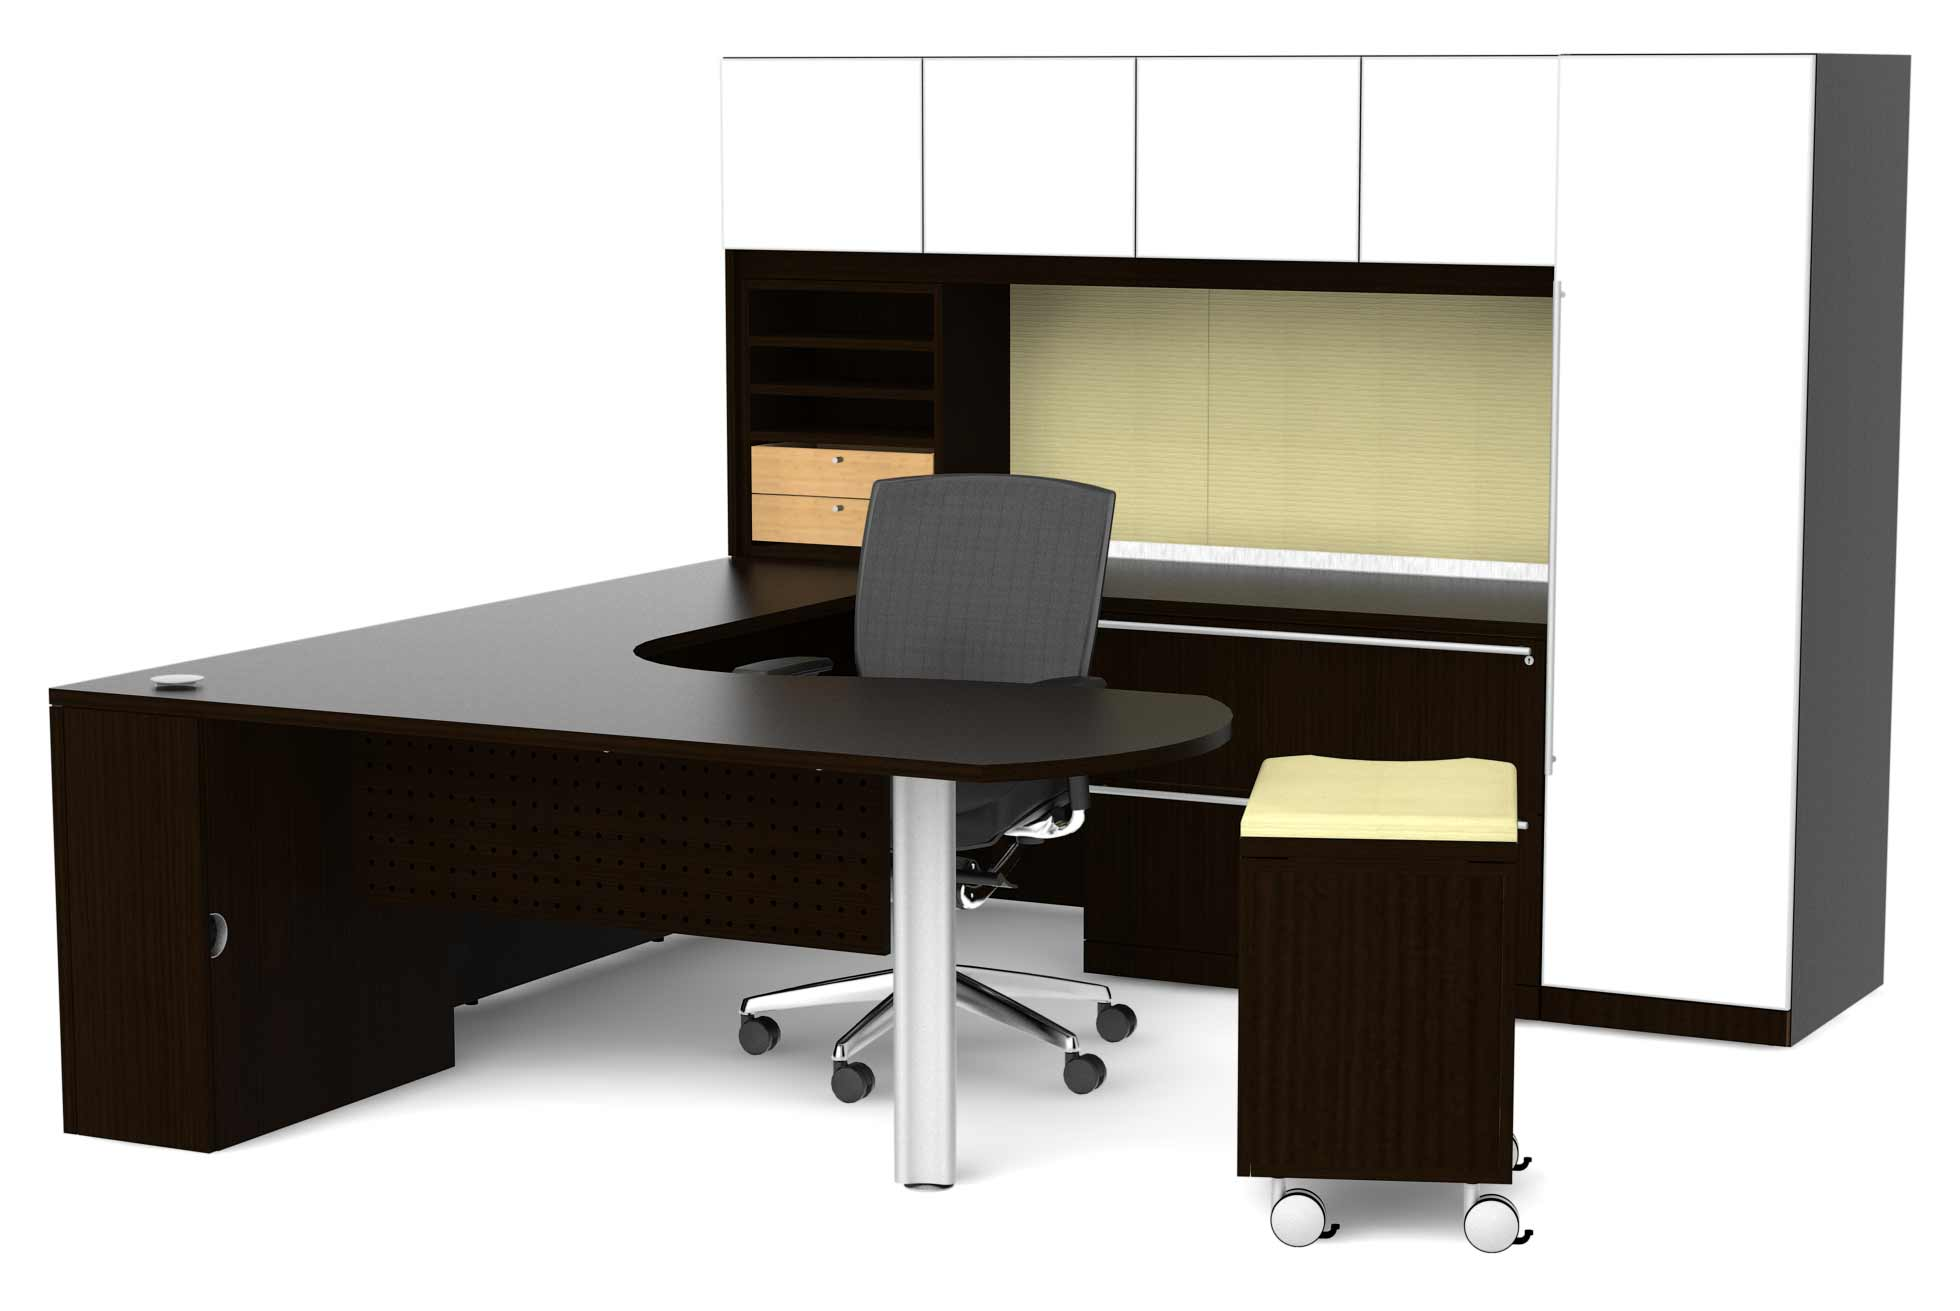 Cherryman office furniture manufactures - Office furnitur ...